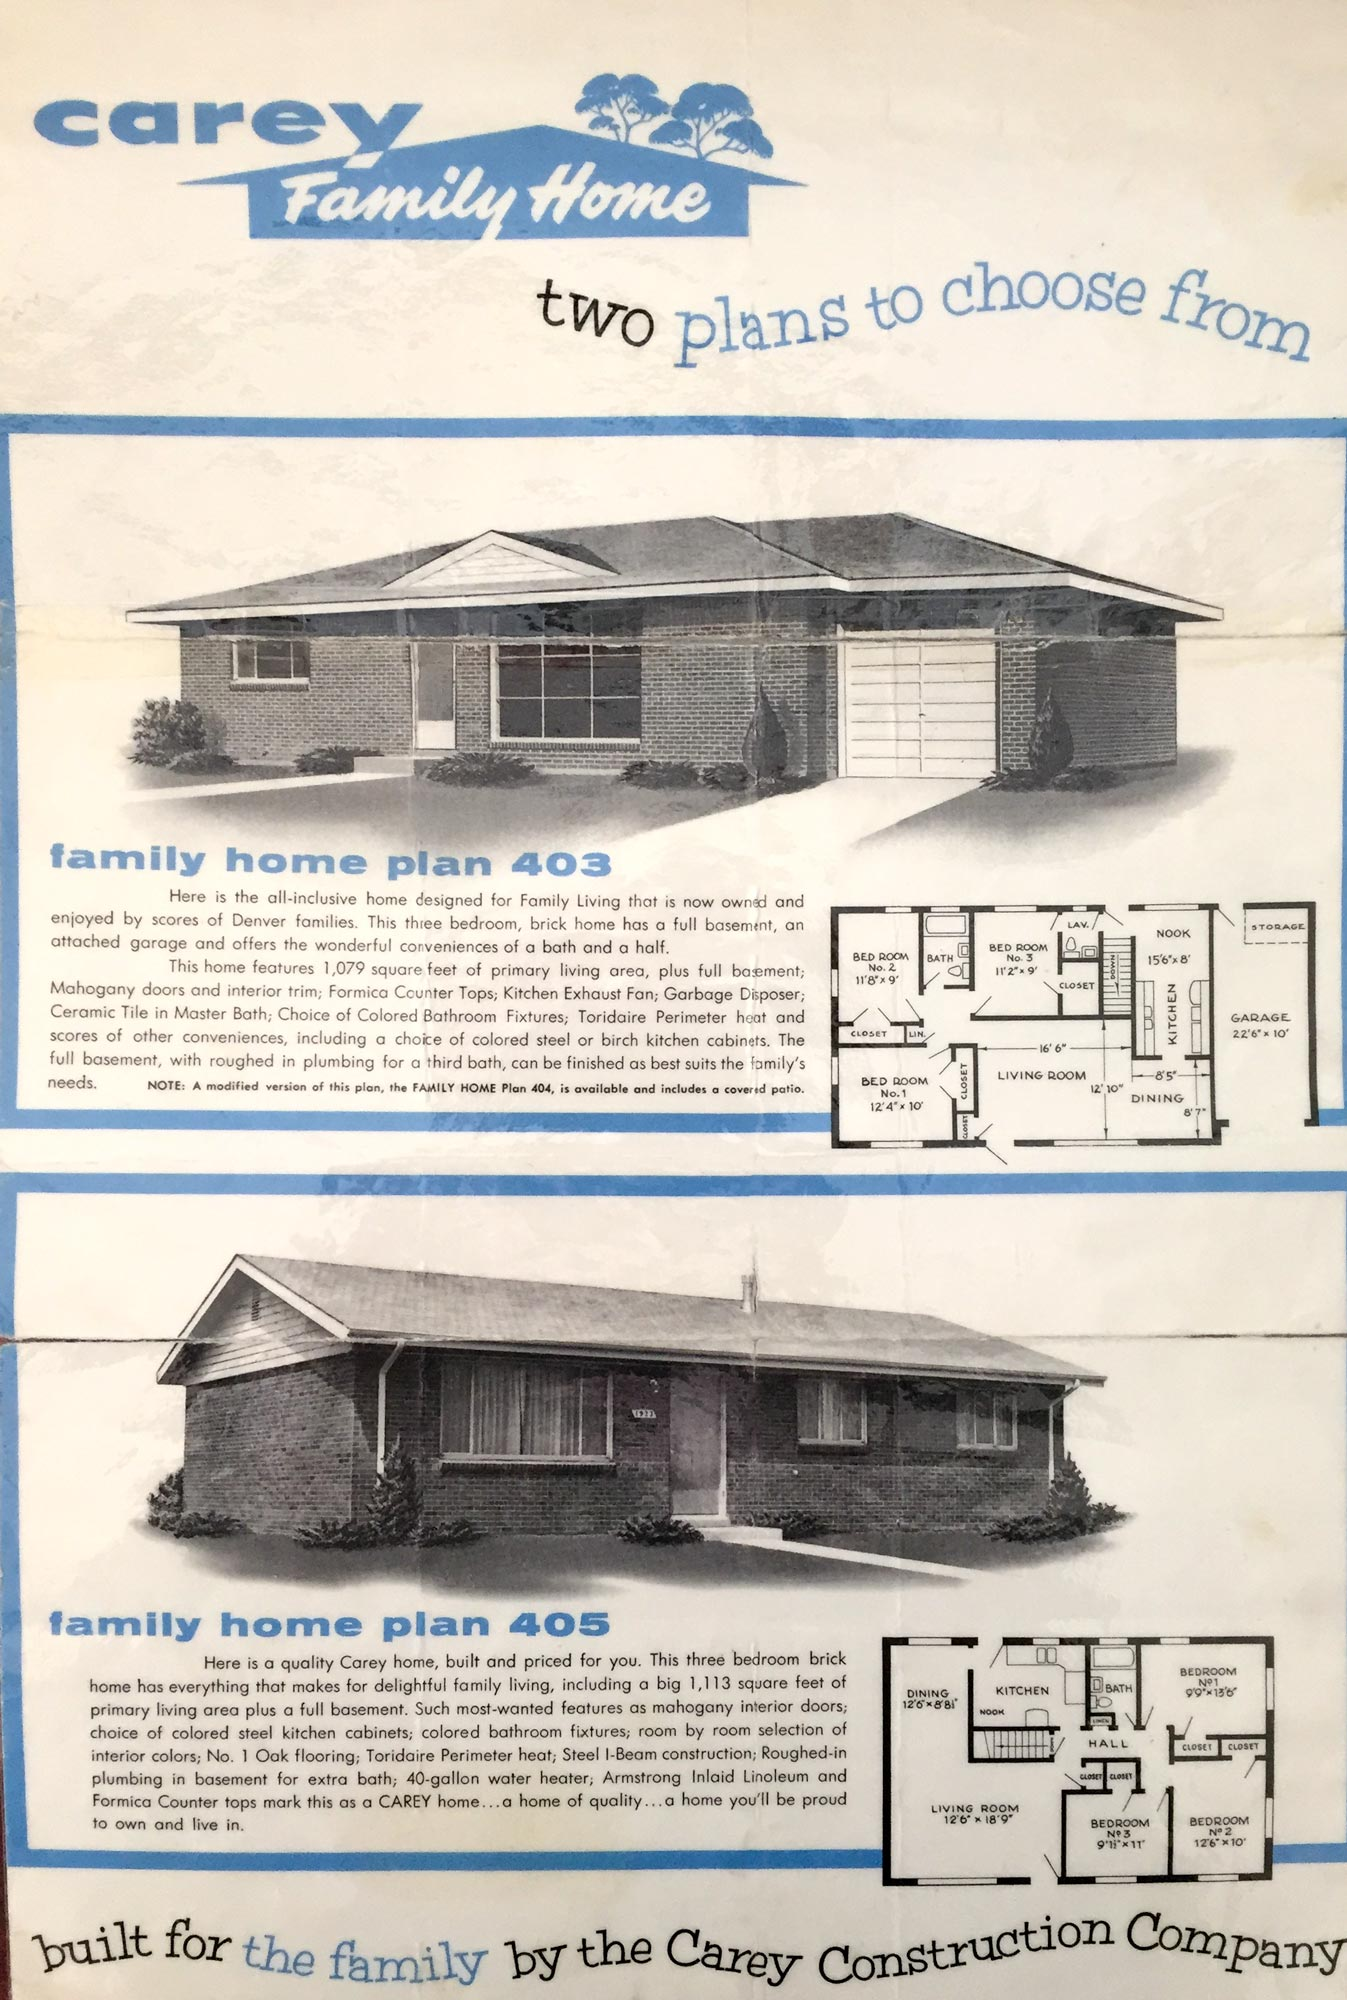 Adrian-Kinney-Carey-Homes-Harvey-Park-Denver-Brochure-front.jpg